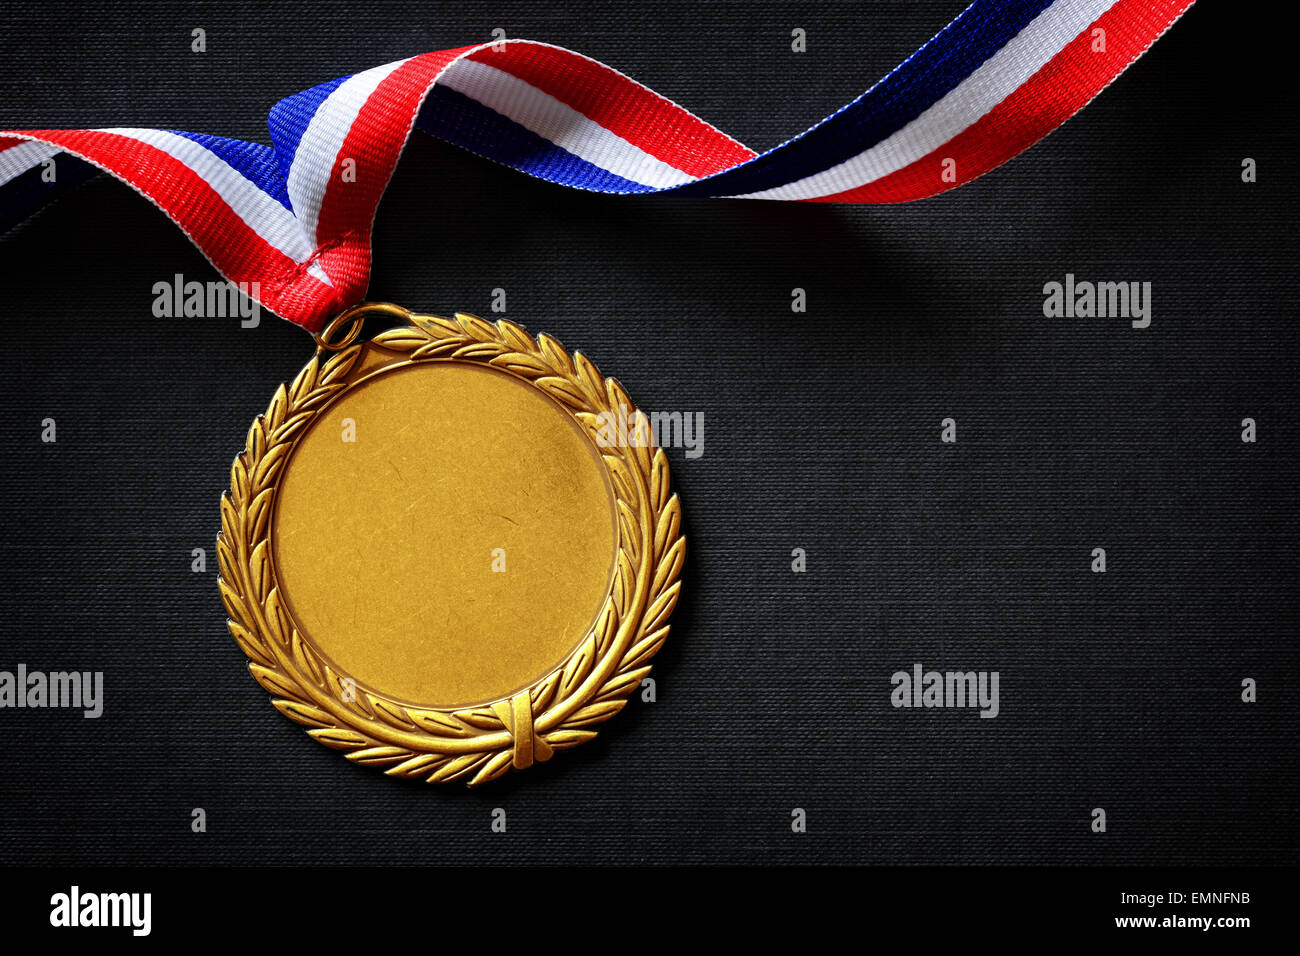 Gold medal on black with blank face for text, concept for winning or success - Stock Image